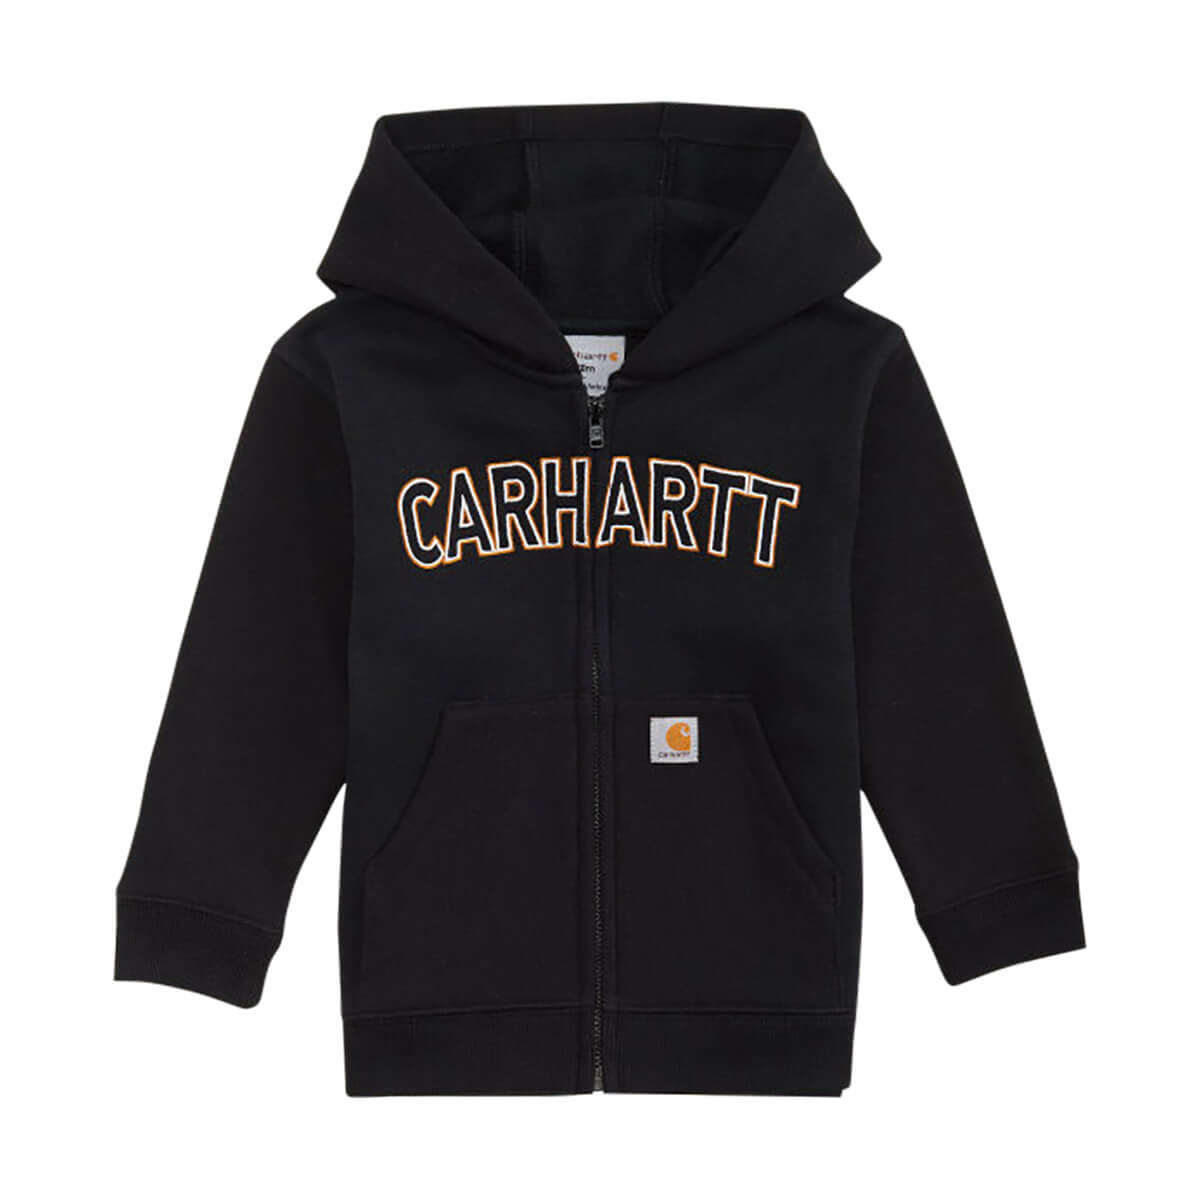 Carhartt Toddler Boys' Logo Fleece Sweatshirt Caviar Black - 2T